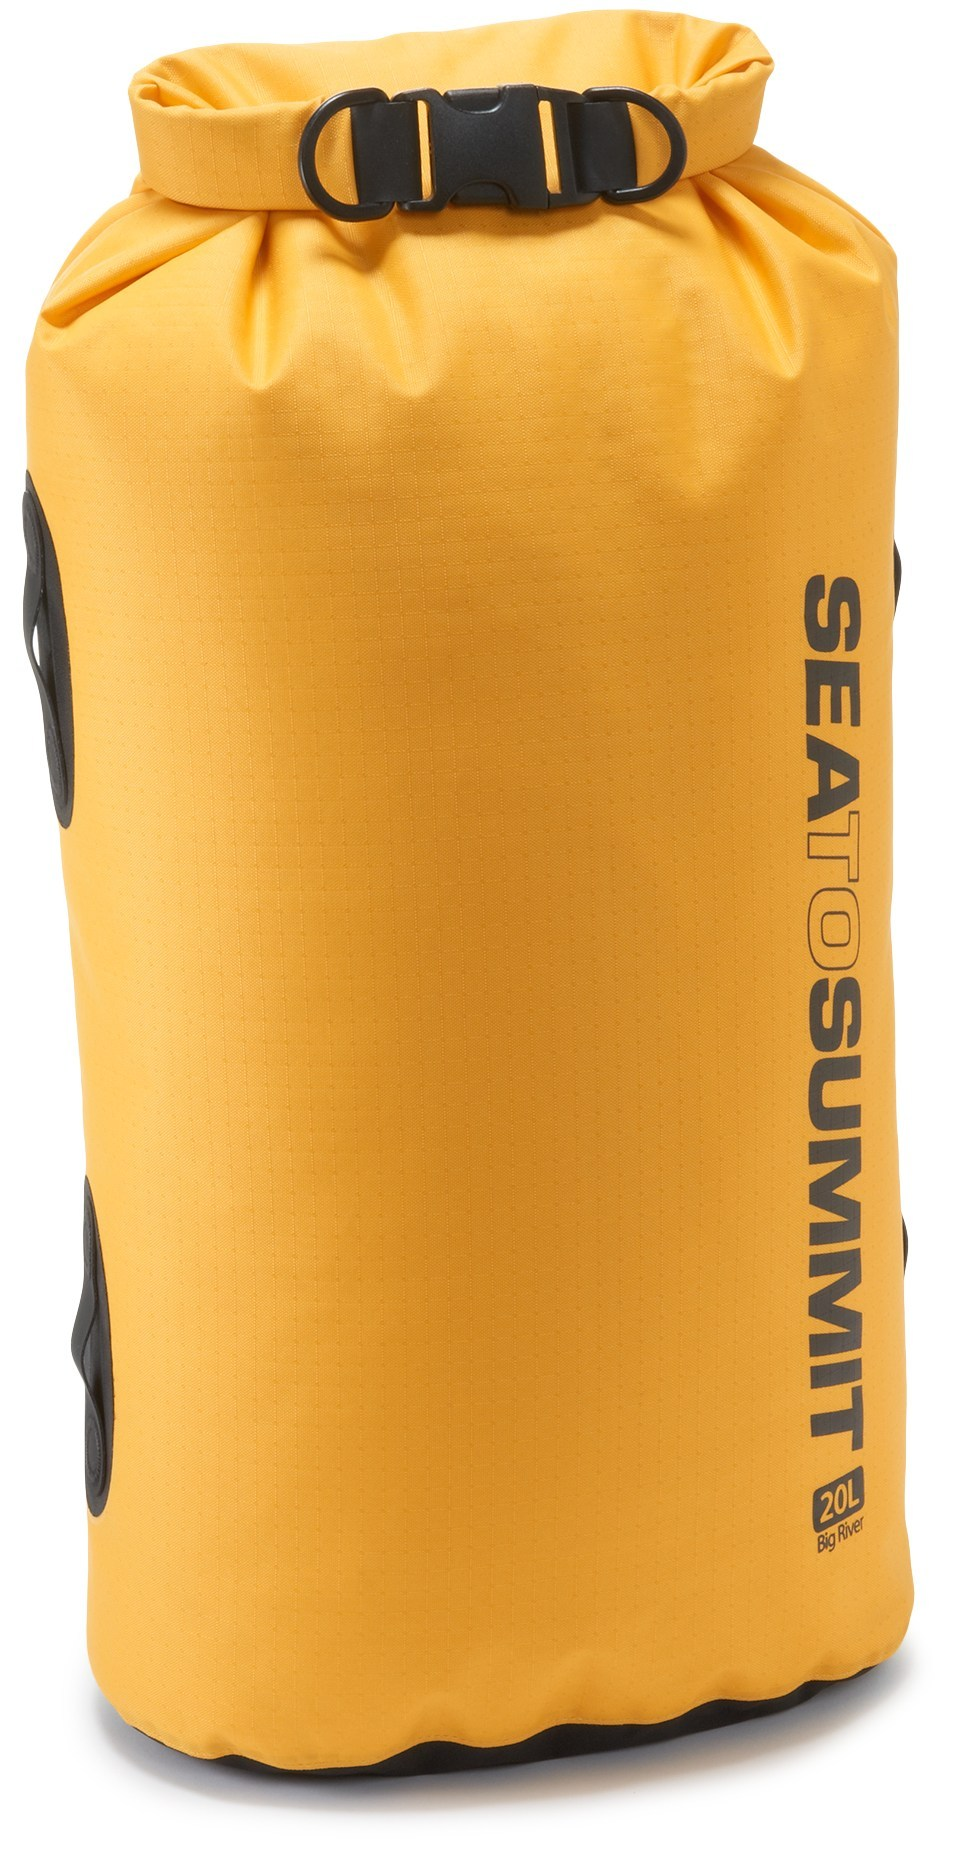 Sea to Summit Big River Dry Bag - 20 Liters